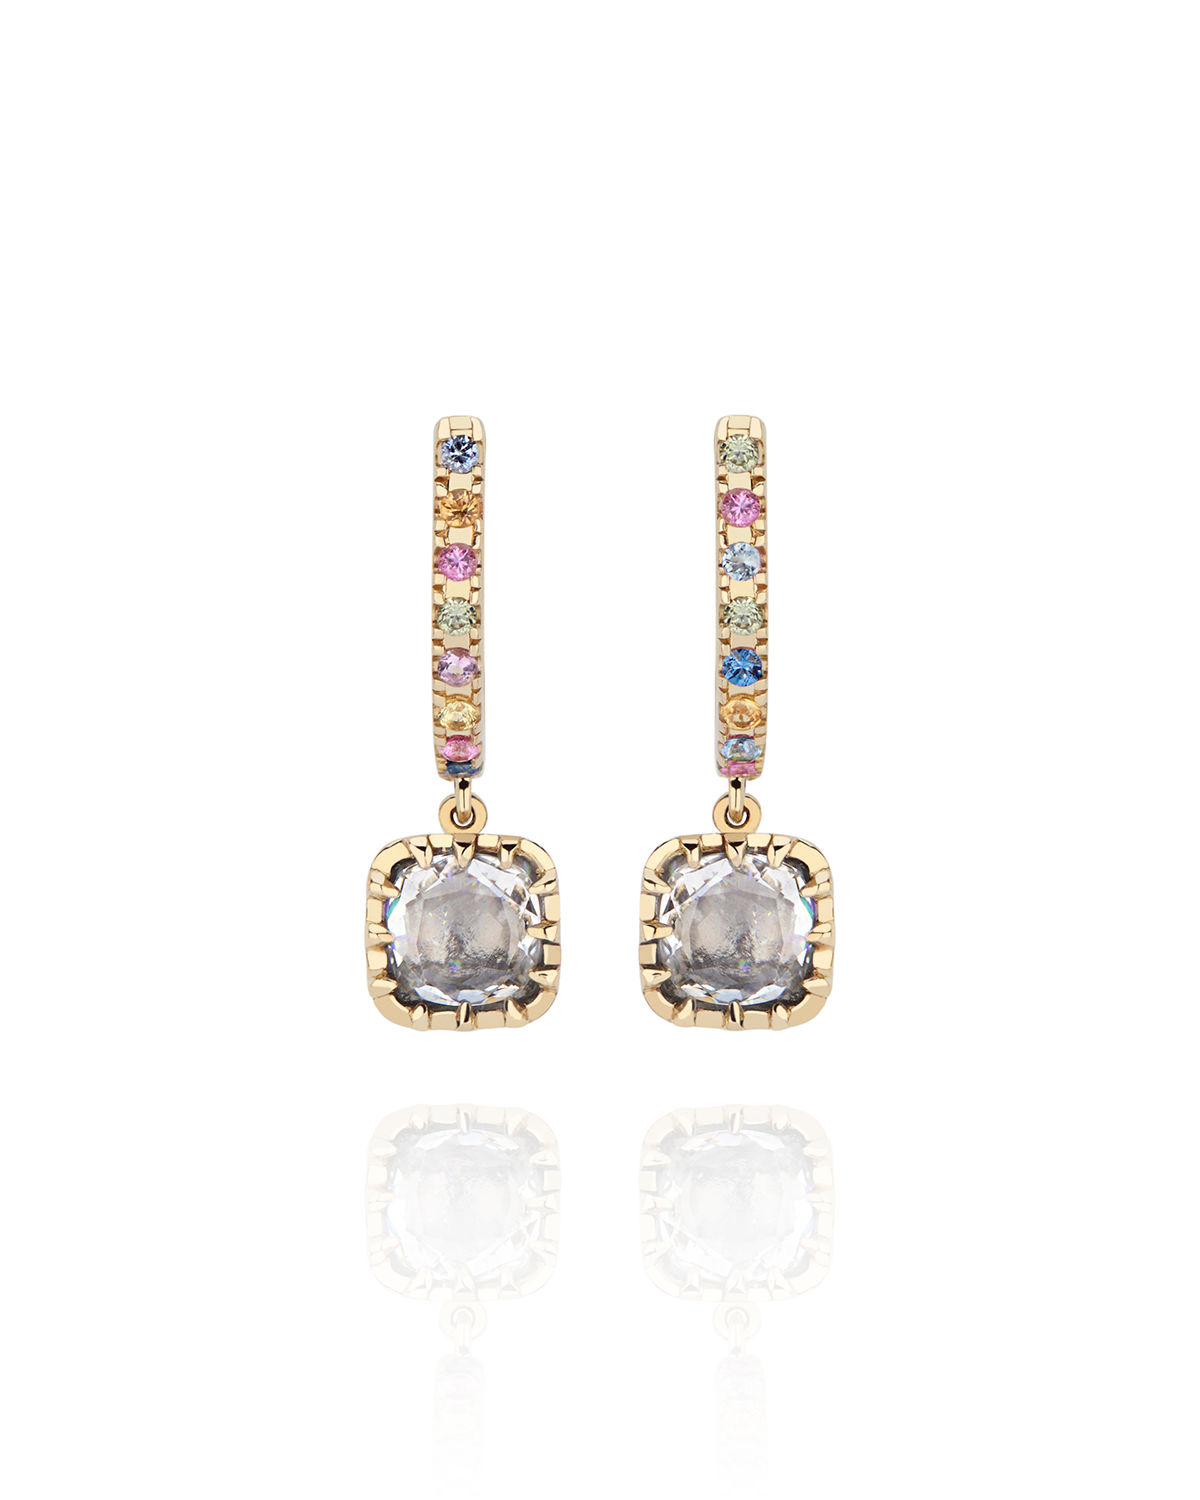 Caprice Elements Small Cushion Drop Earrings